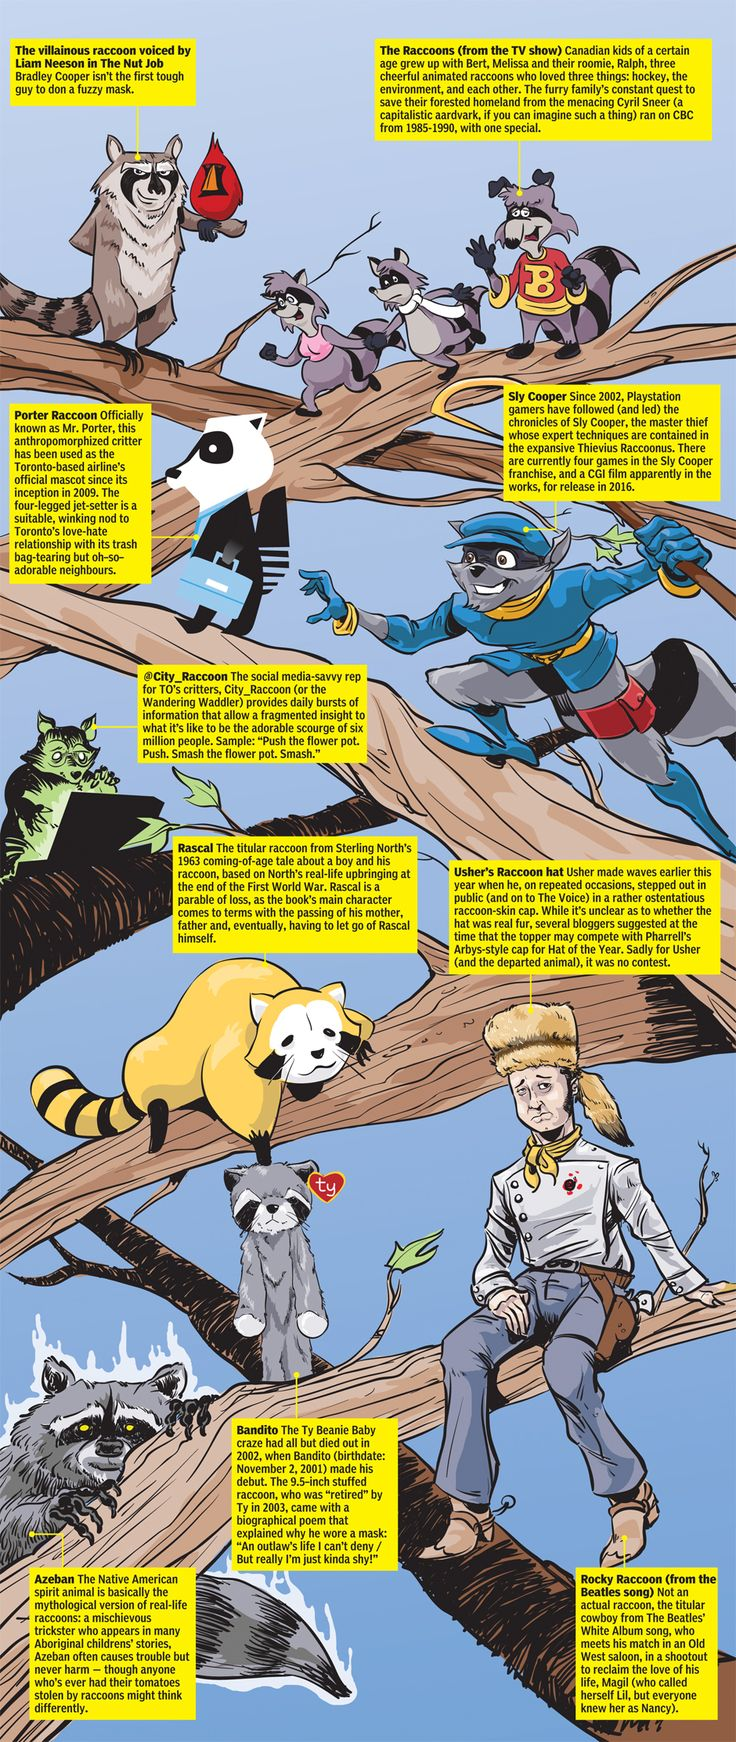 Behind the mask: From folklore to Guardians of the Galaxy, a brief look at raccoons in pop-culture history / Illustration by Andrew Barr #GOTG